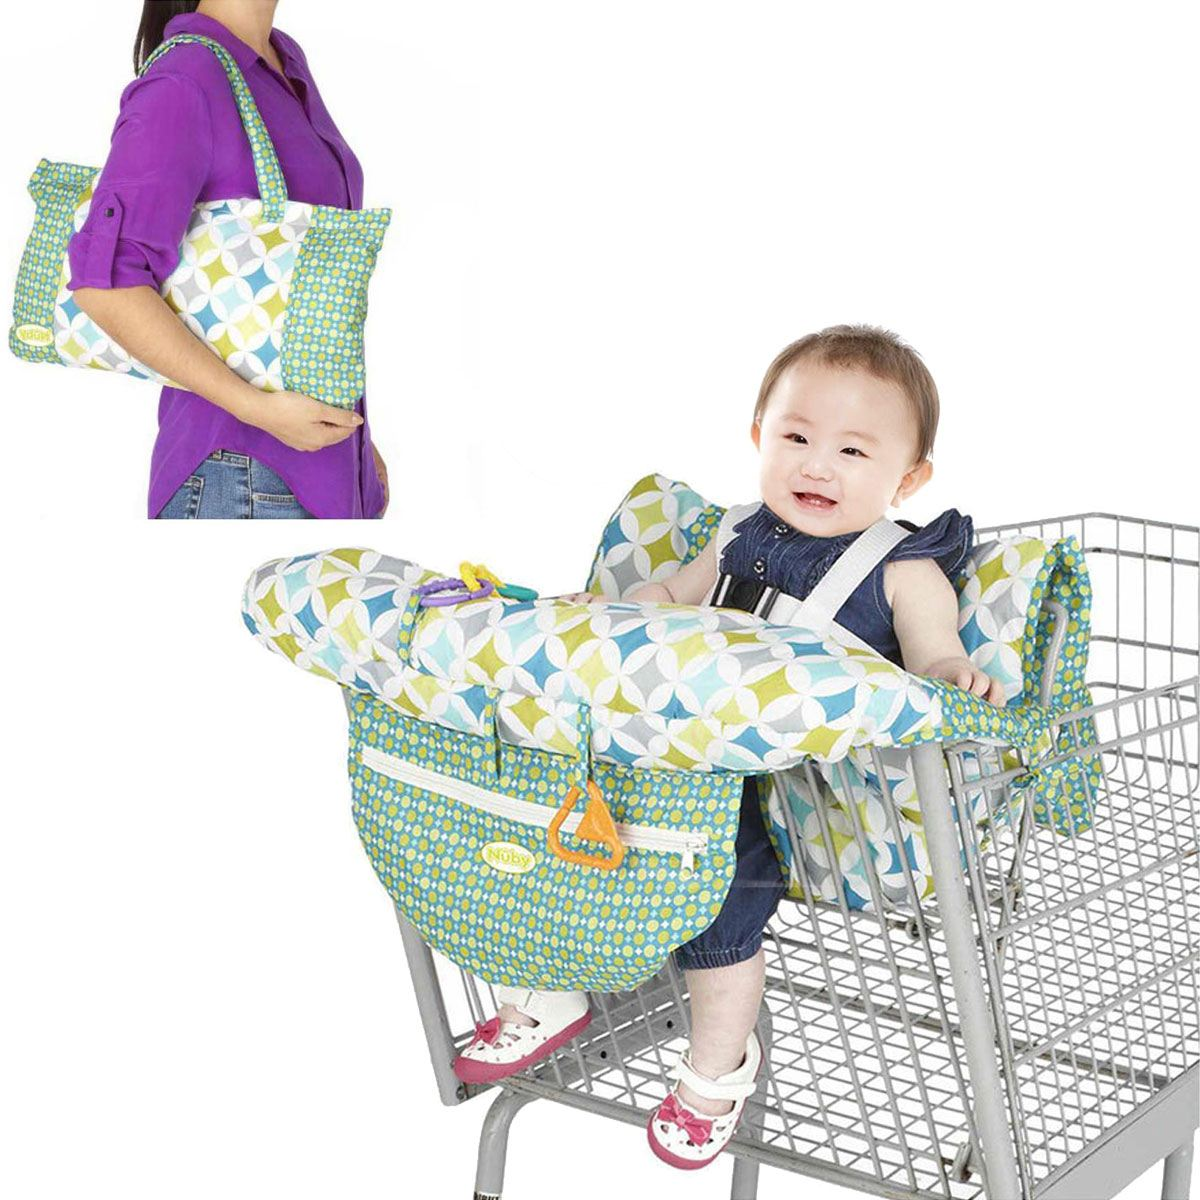 Foldable Baby Kids Shopping Cart Cushion Kids Trolley Pad Baby Shopping Push Cart Protection Cover Baby Chair Seat Mat printed baby child supermarket trolley dining chair protection antibacterial safety travel portable shopping cart cushion